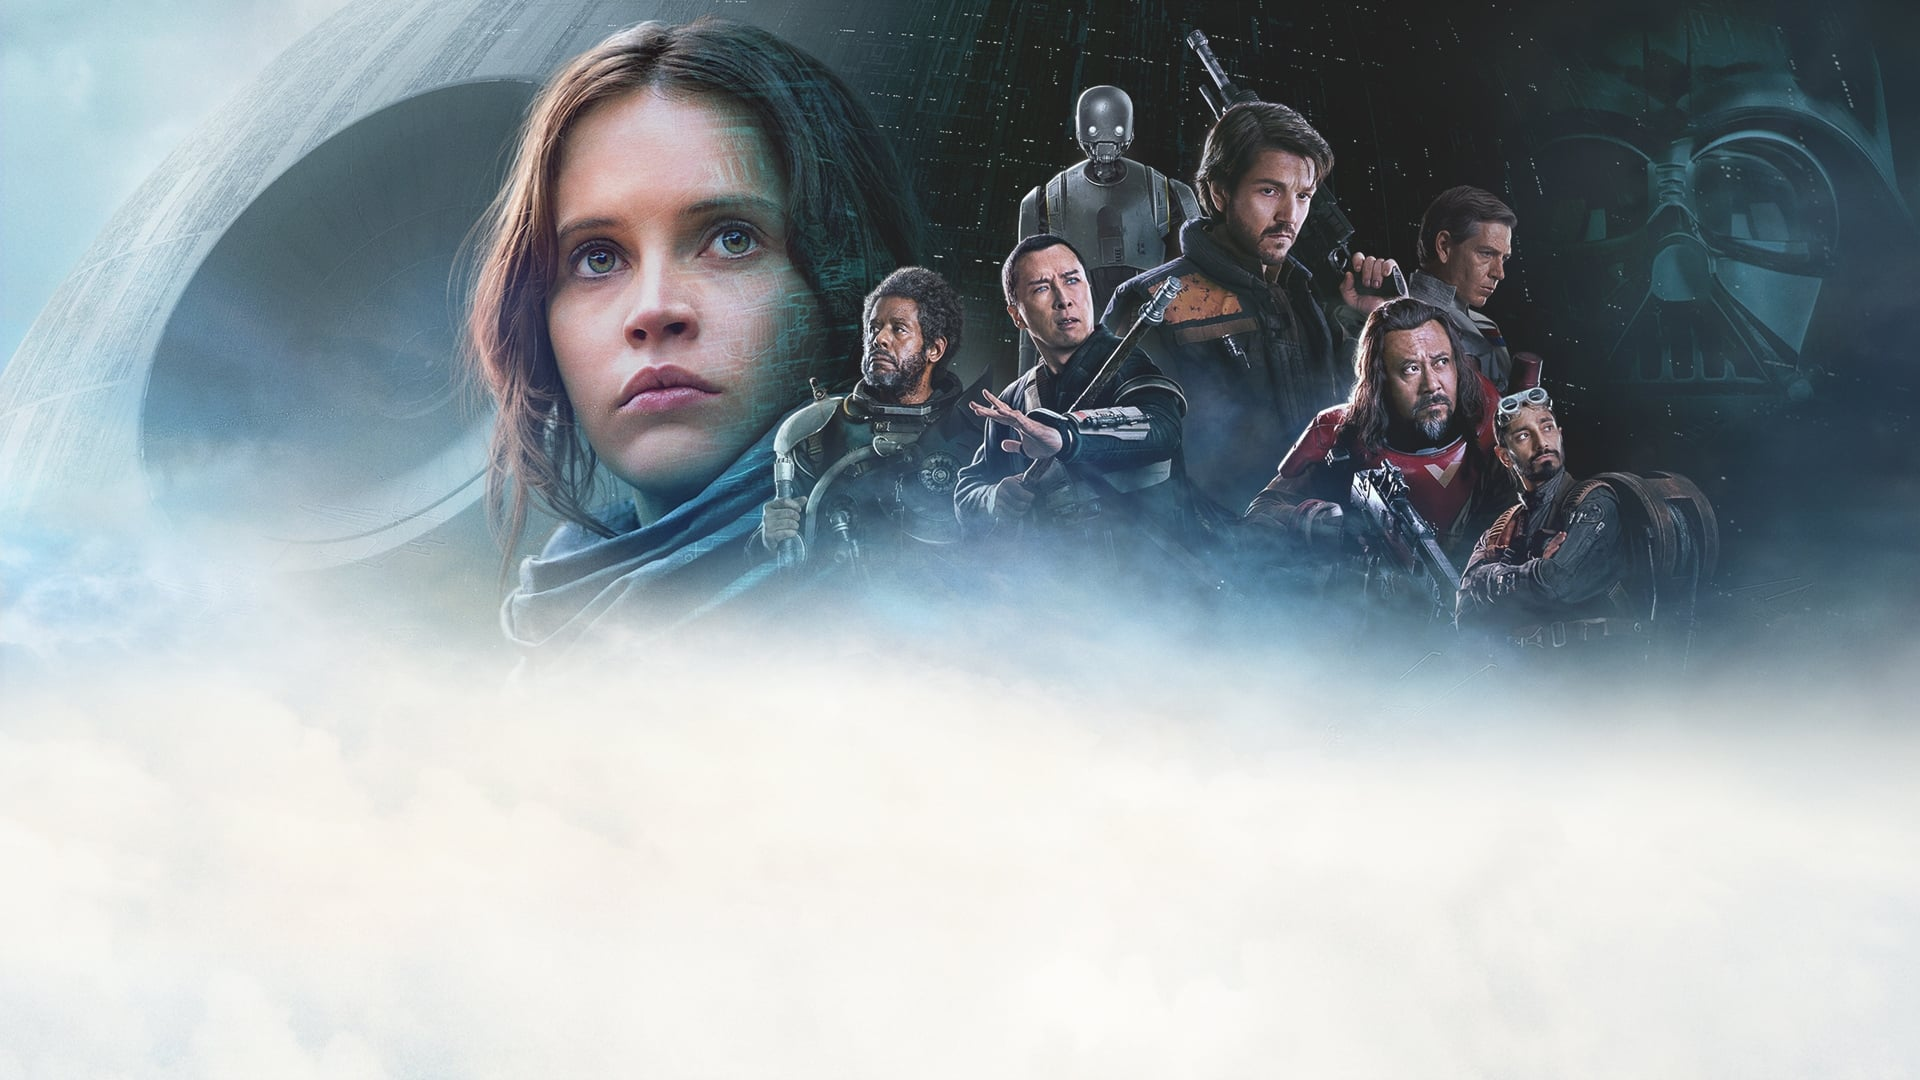 Full Free Watch Rogue One: A Star Wars Story 2016 Movie Online